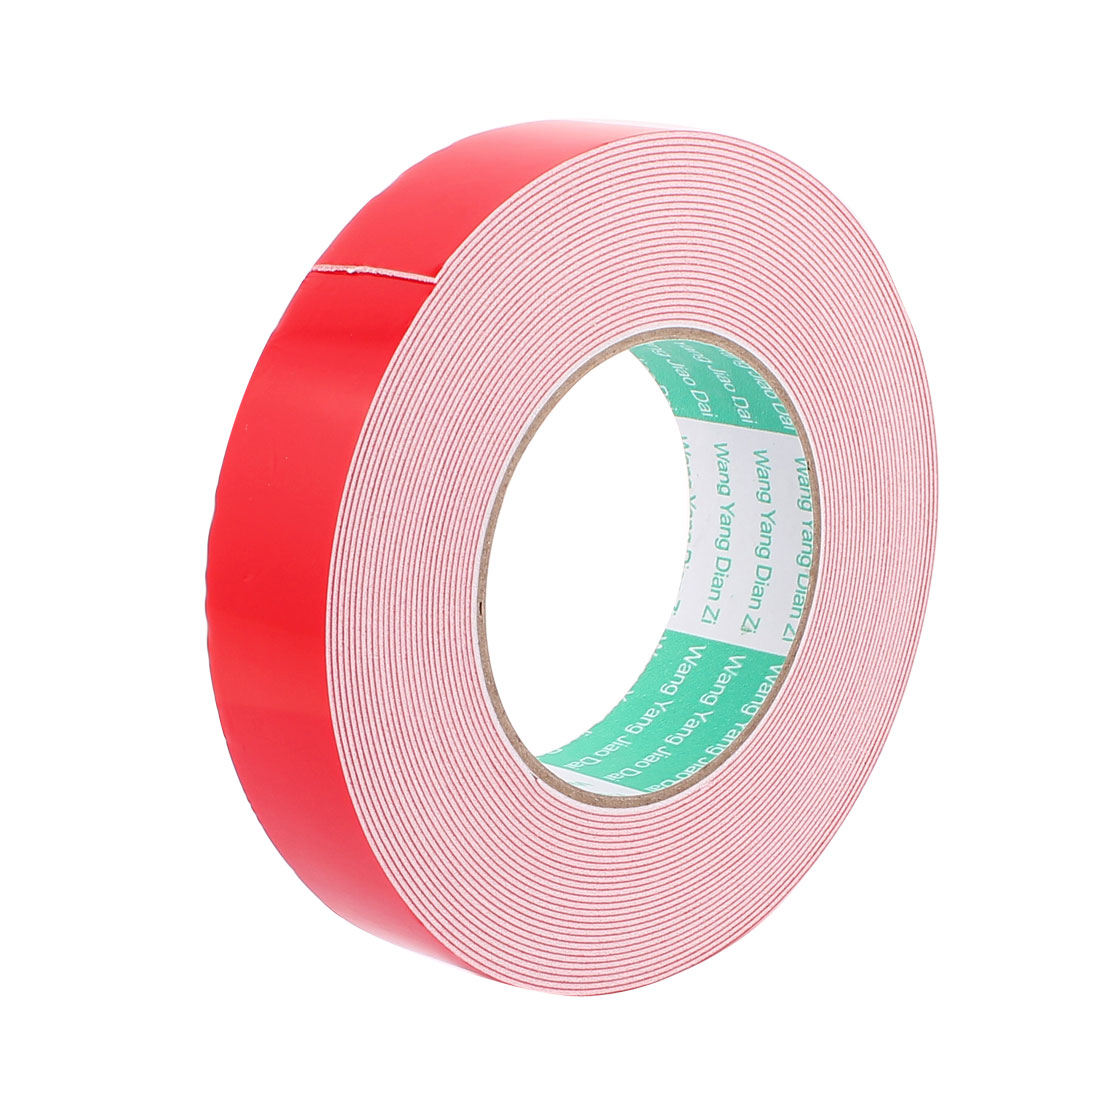 30MM Width 10M Long 1MM Thick White Dual Sided Waterproof Sponge Tape for Car